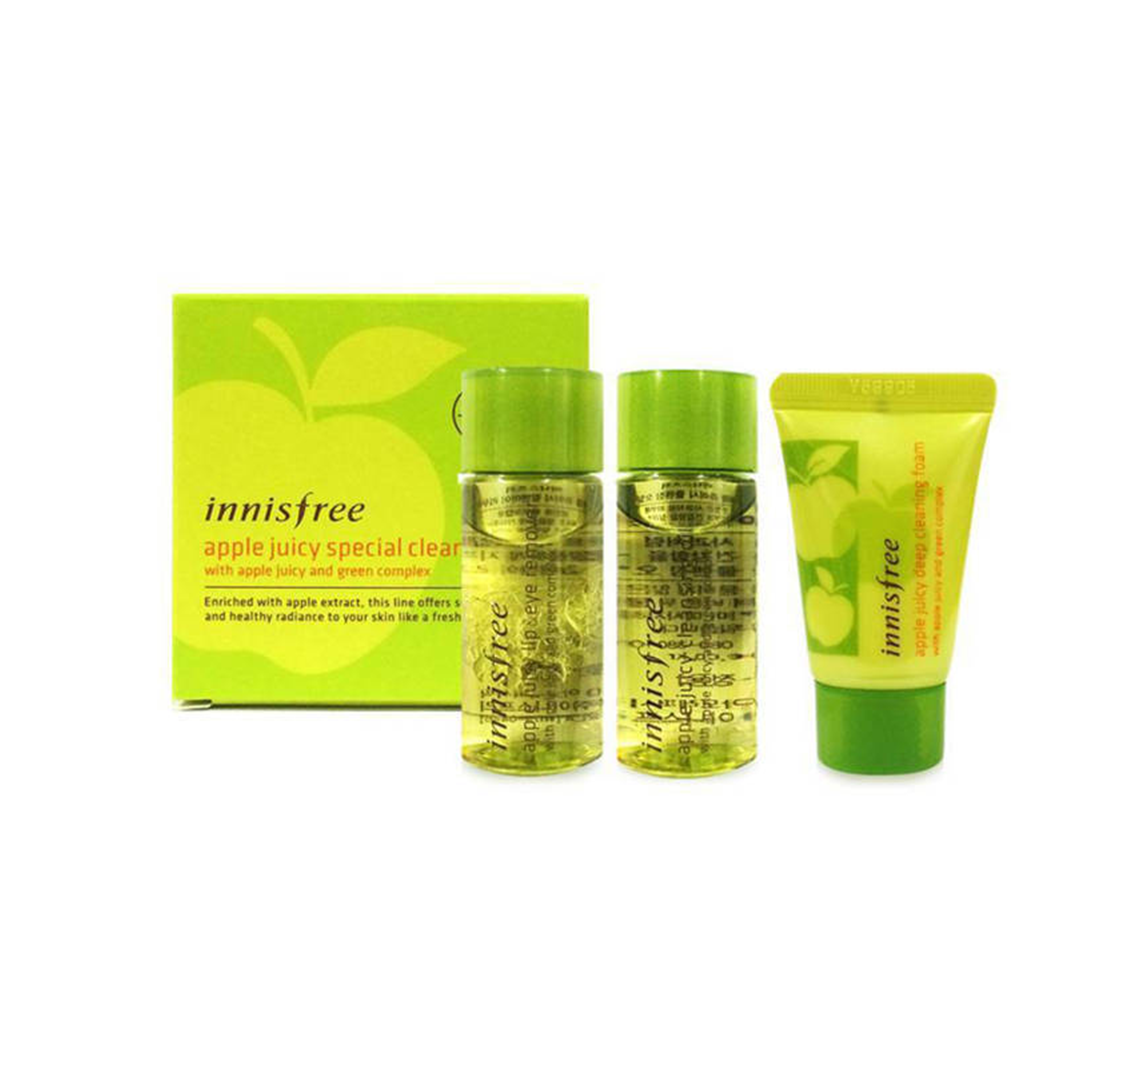 Bộ tẩy trang Apple Juicy Special Cleansing Kit Innisfree